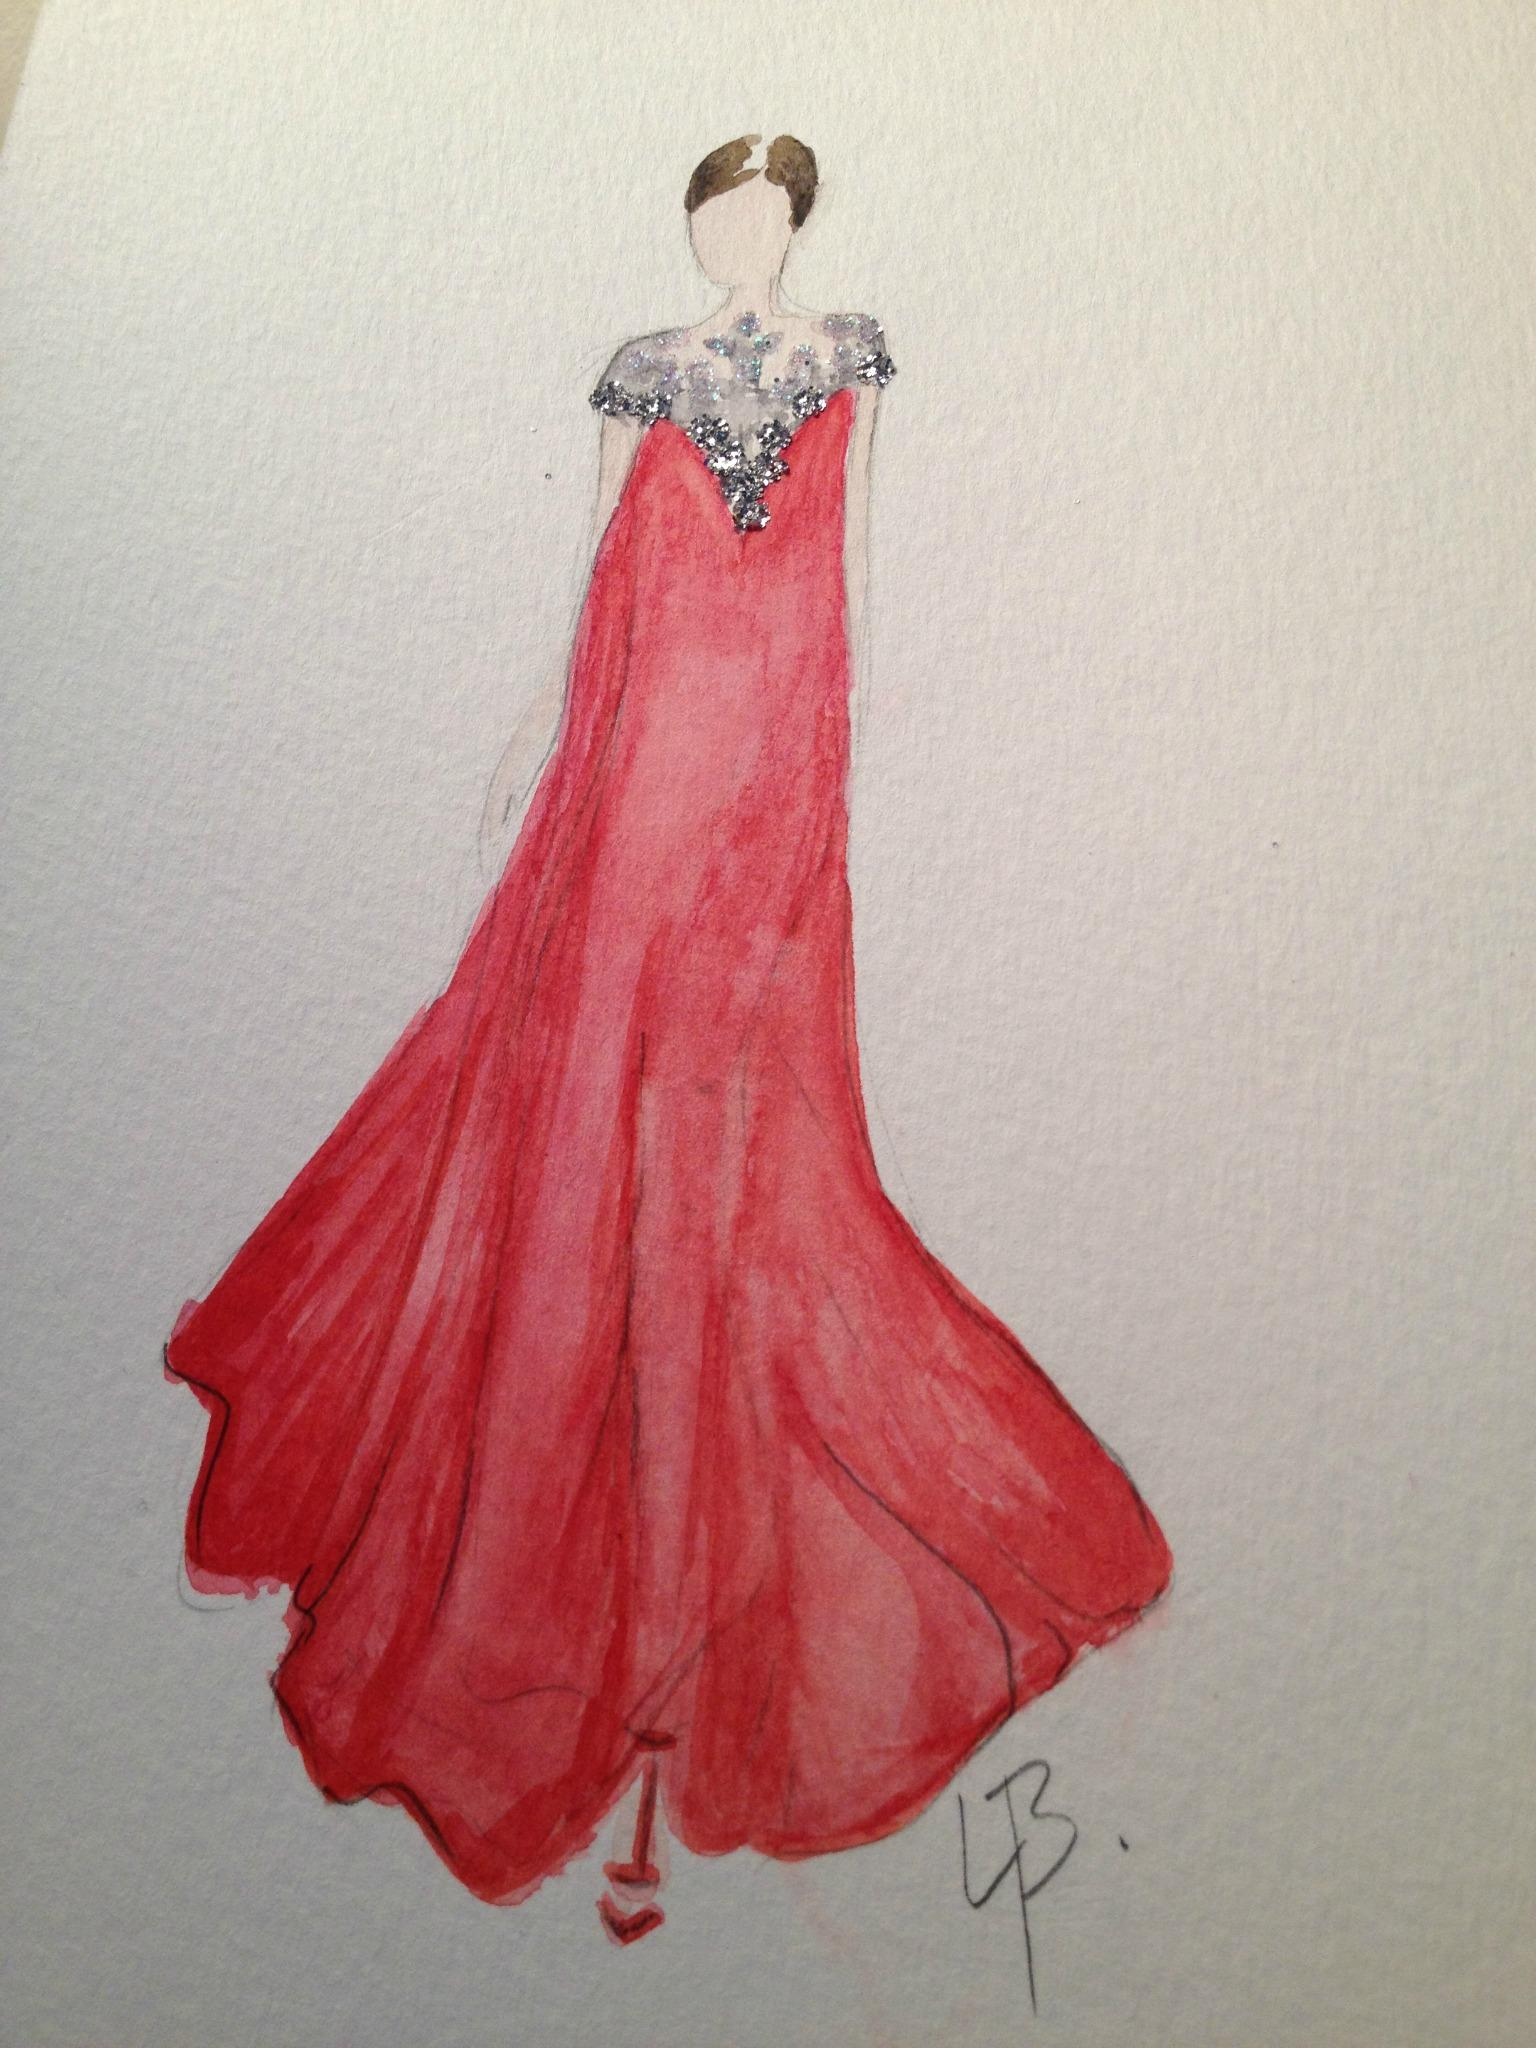 Final embellished watercolors: Silk and Tulle - image 5 - student project